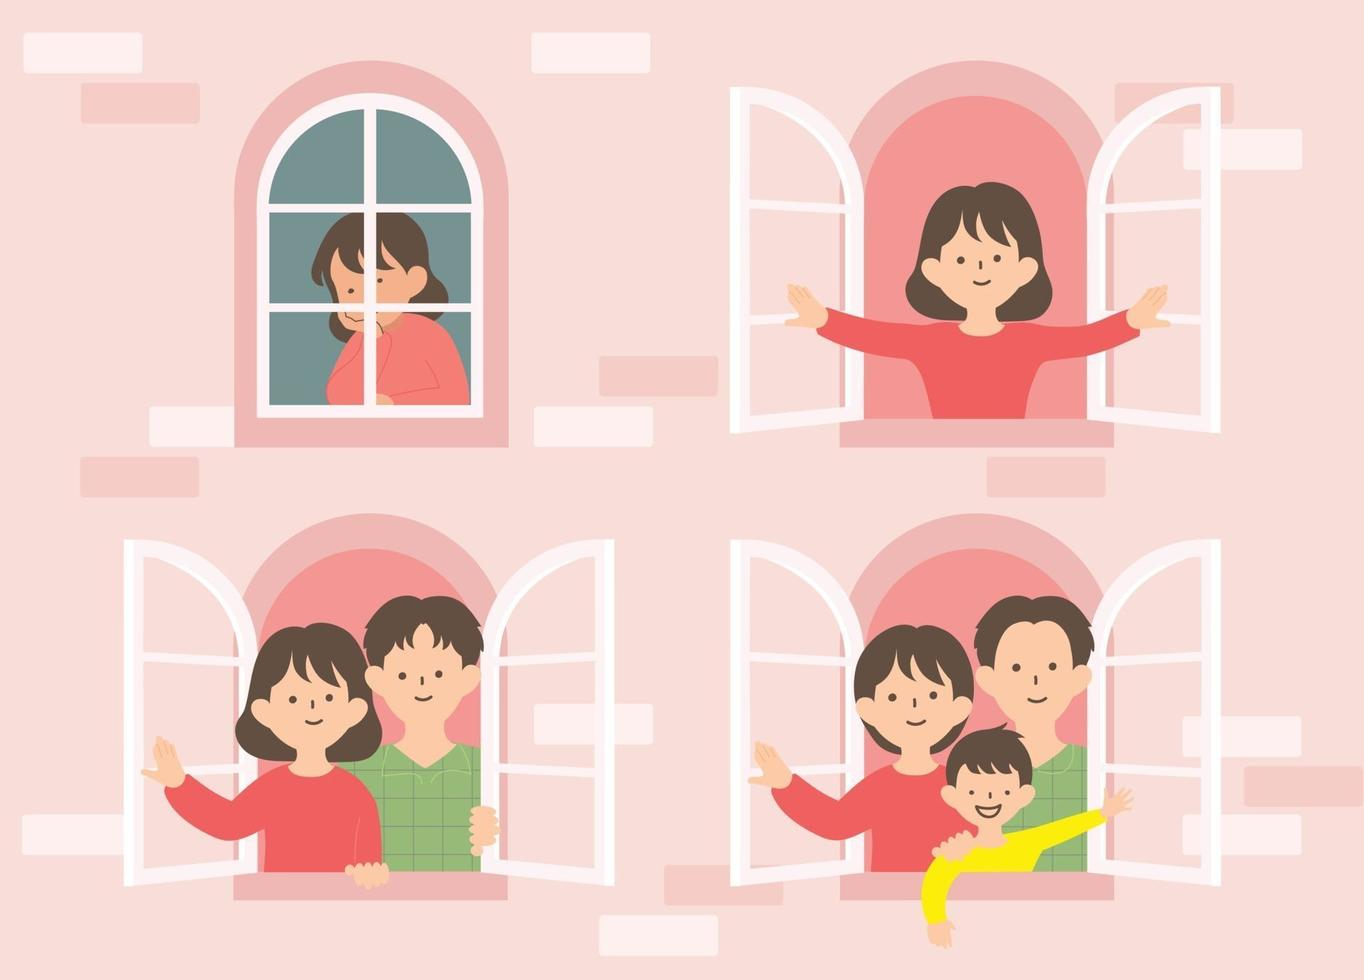 A window showing the process of a woman making a family. hand drawn style vector design illustrations.